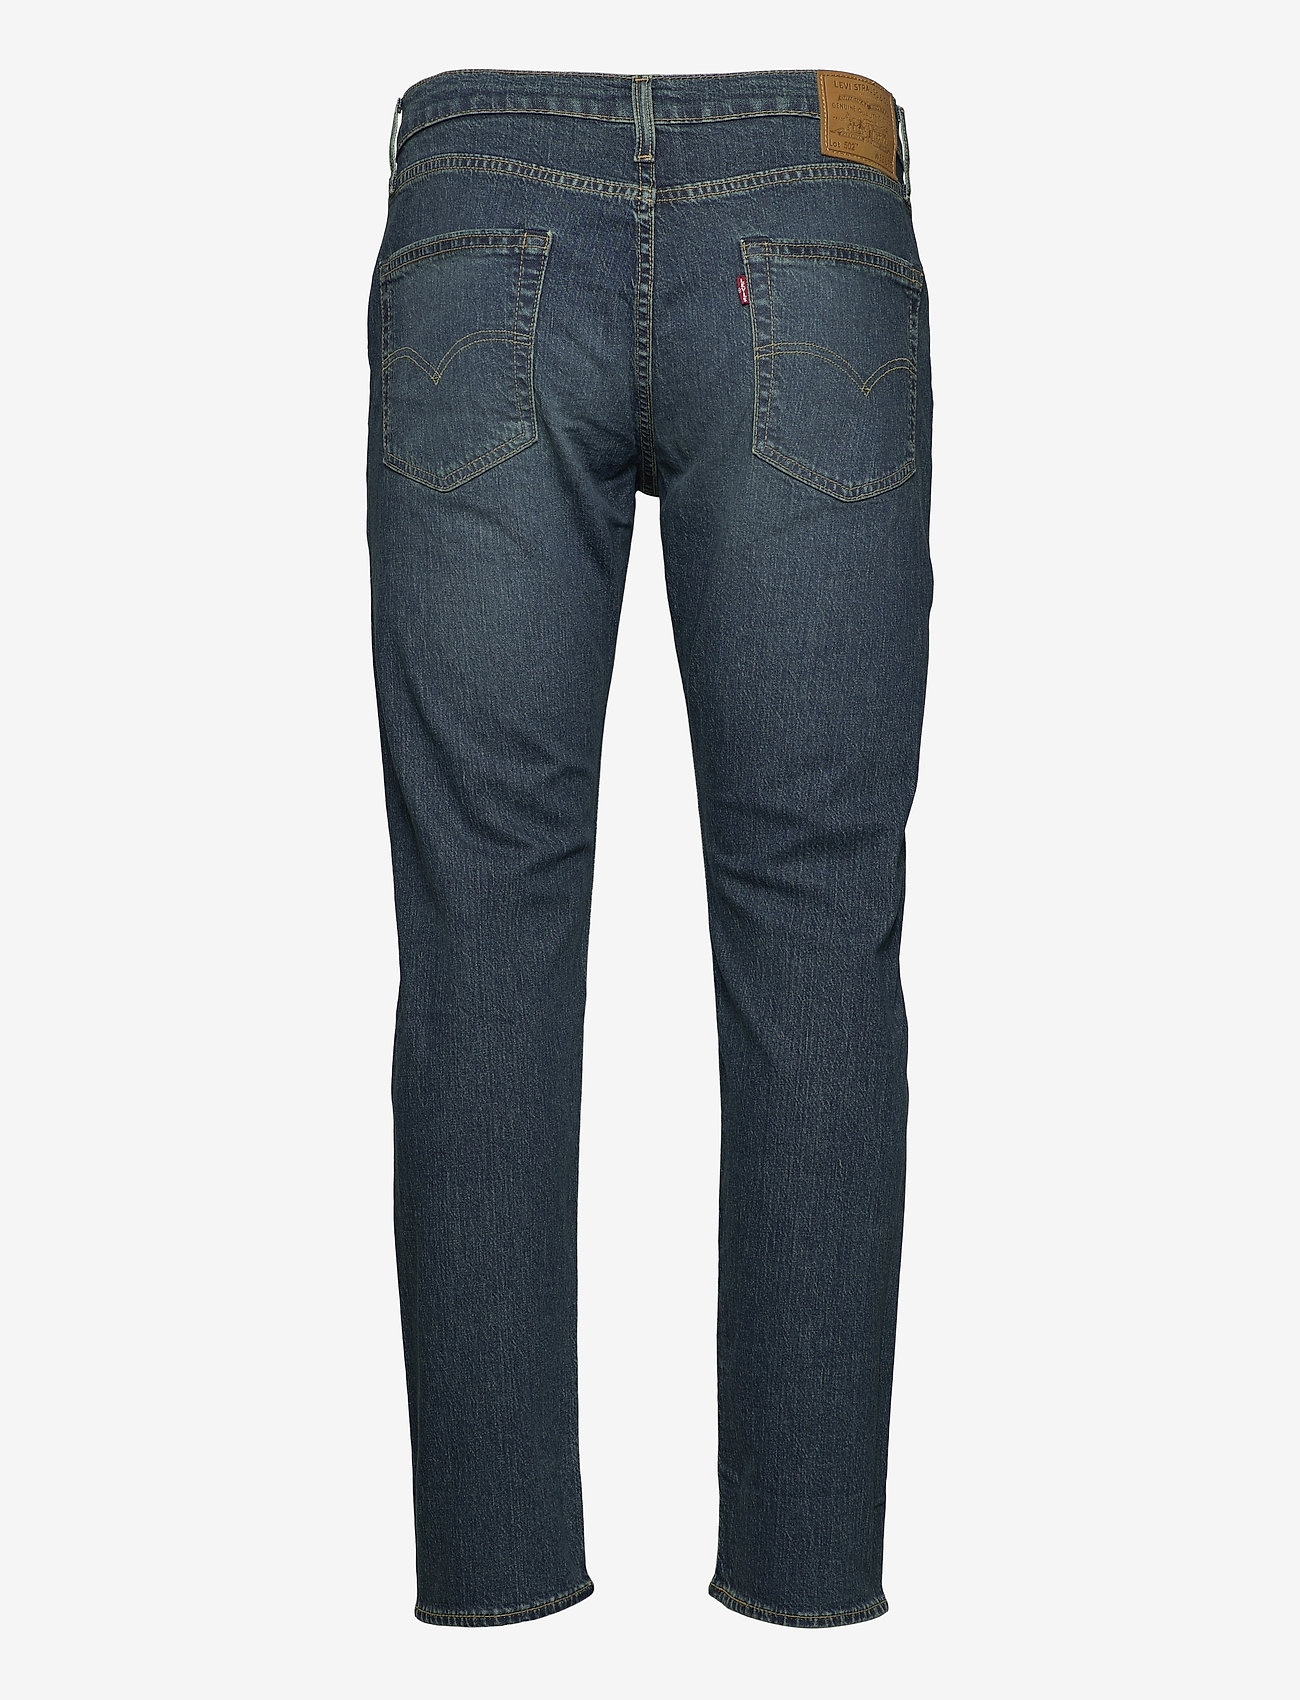 LEVI´S Men - 502 TAPER EAZY SHOCK GREEN - regular jeans - dark indigo - worn in - 1